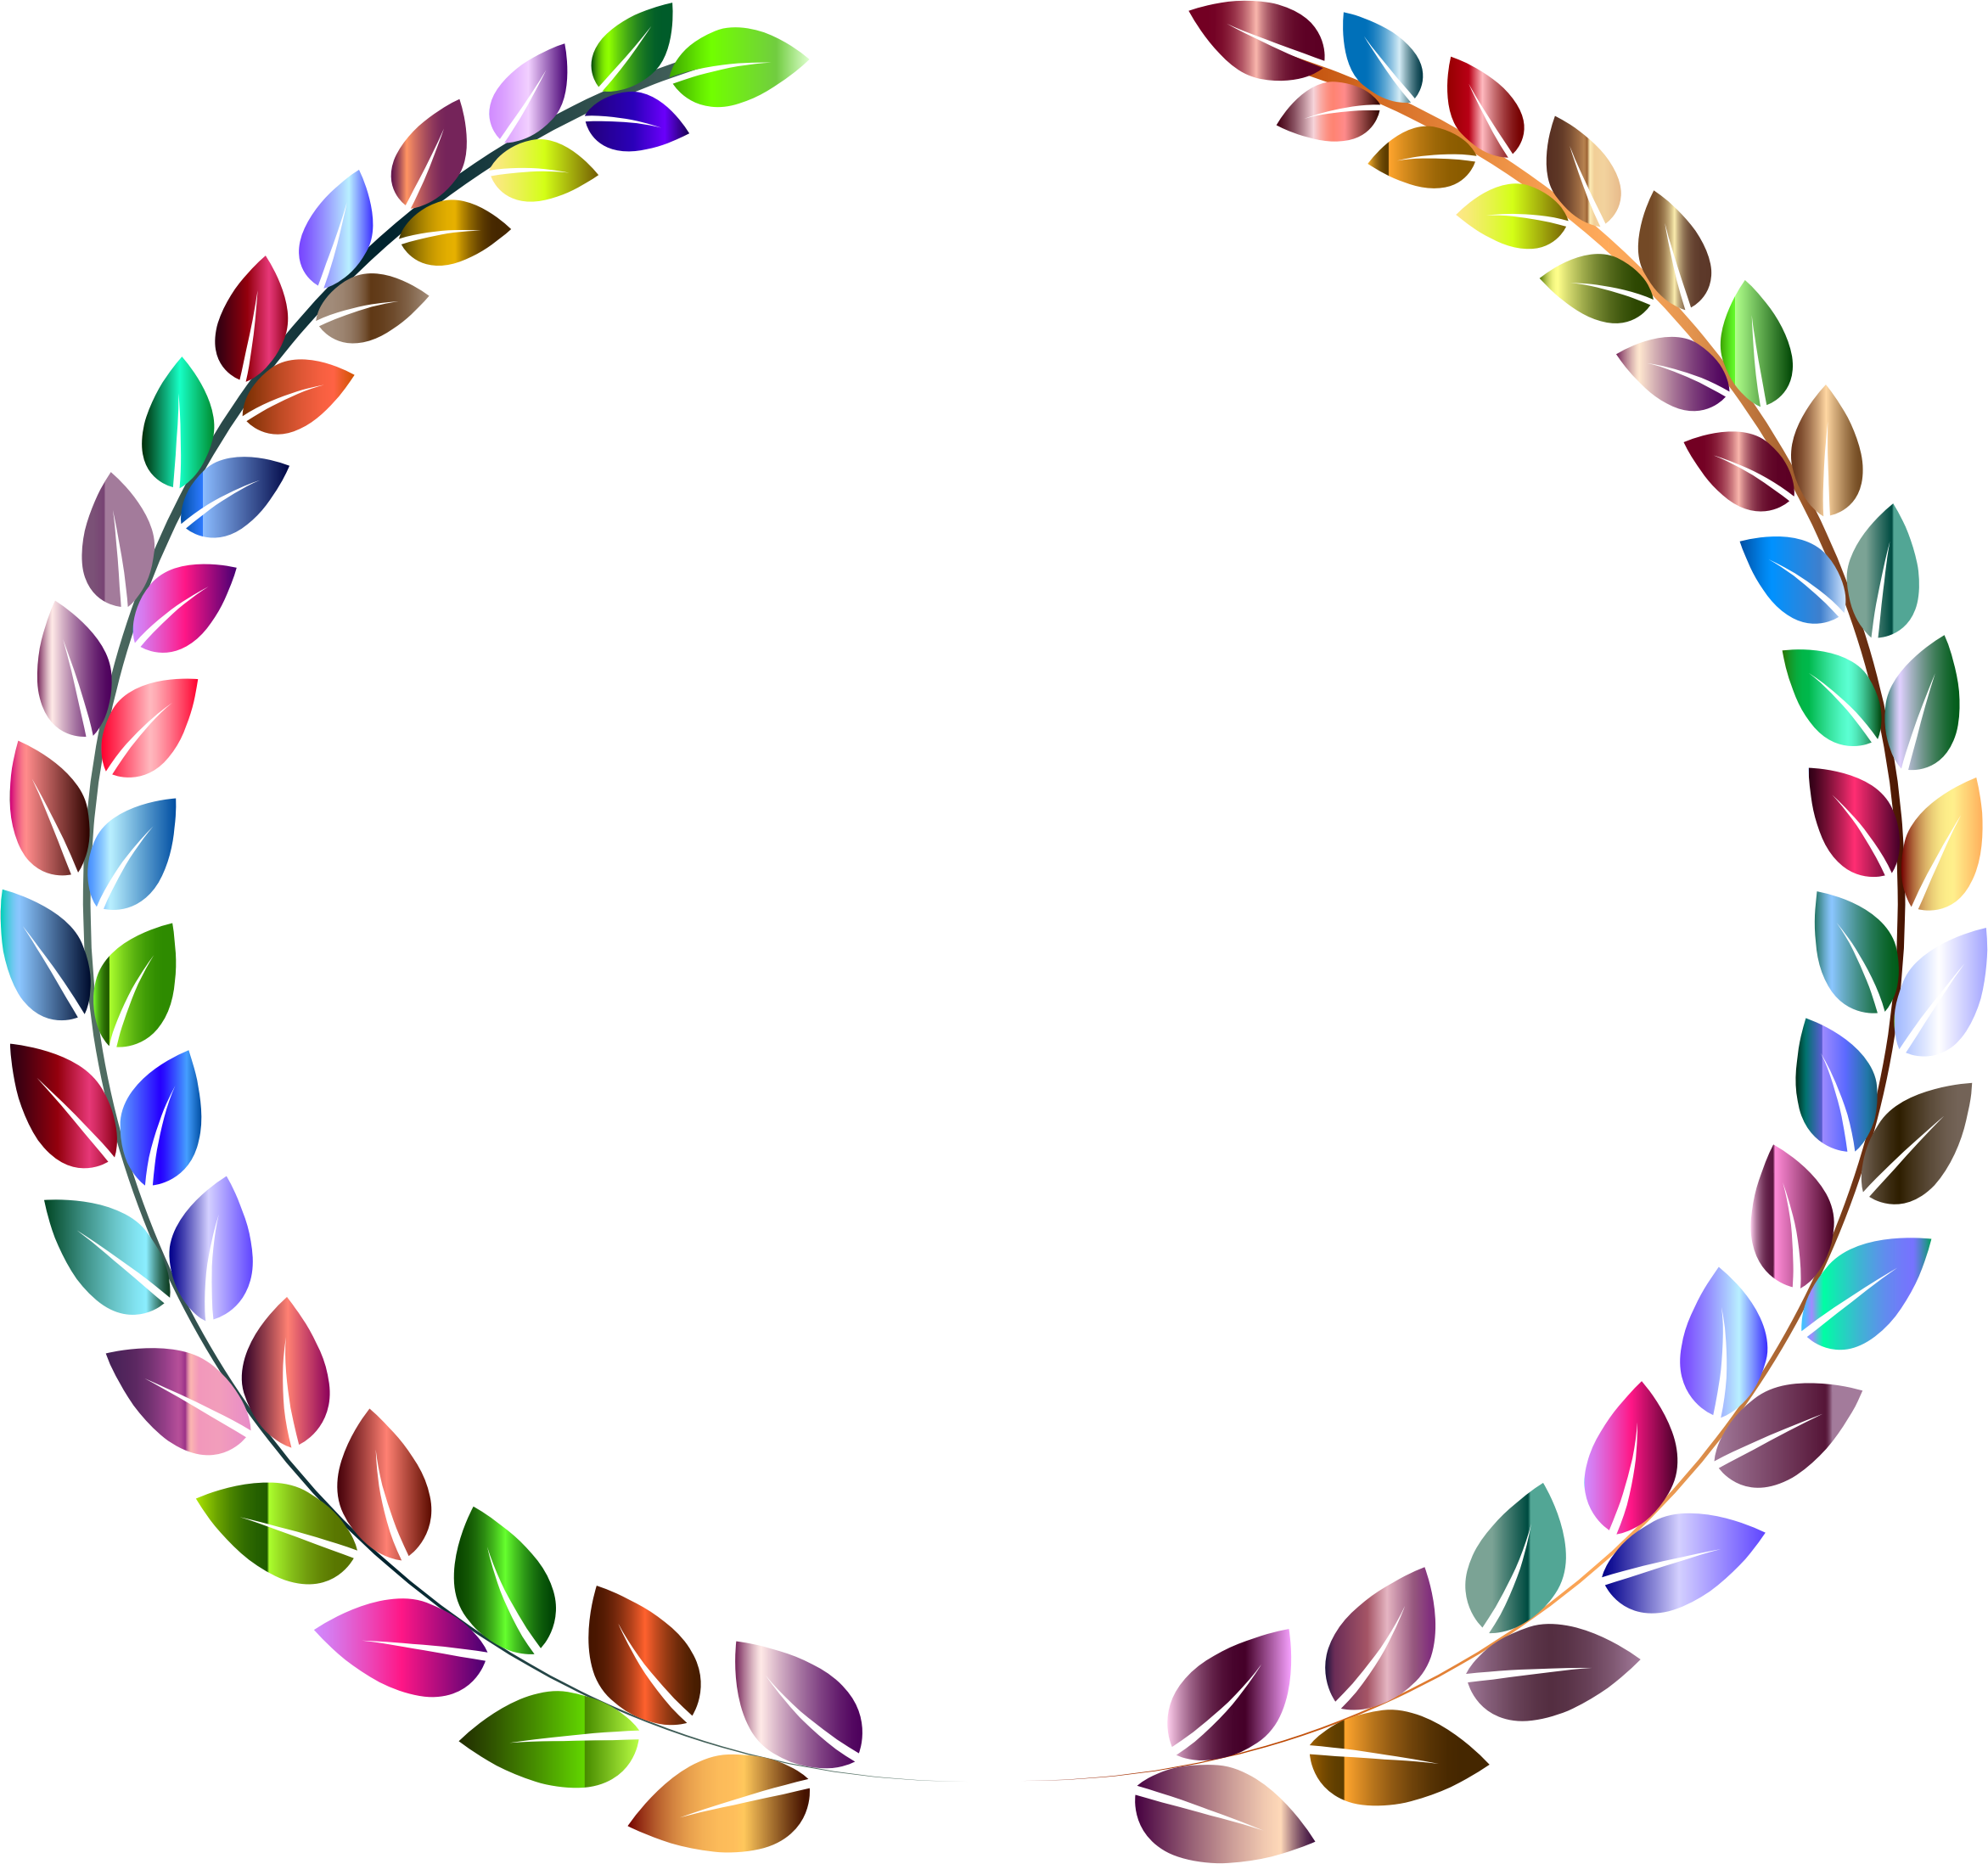 Prismatic Wreath 3 by GDJ